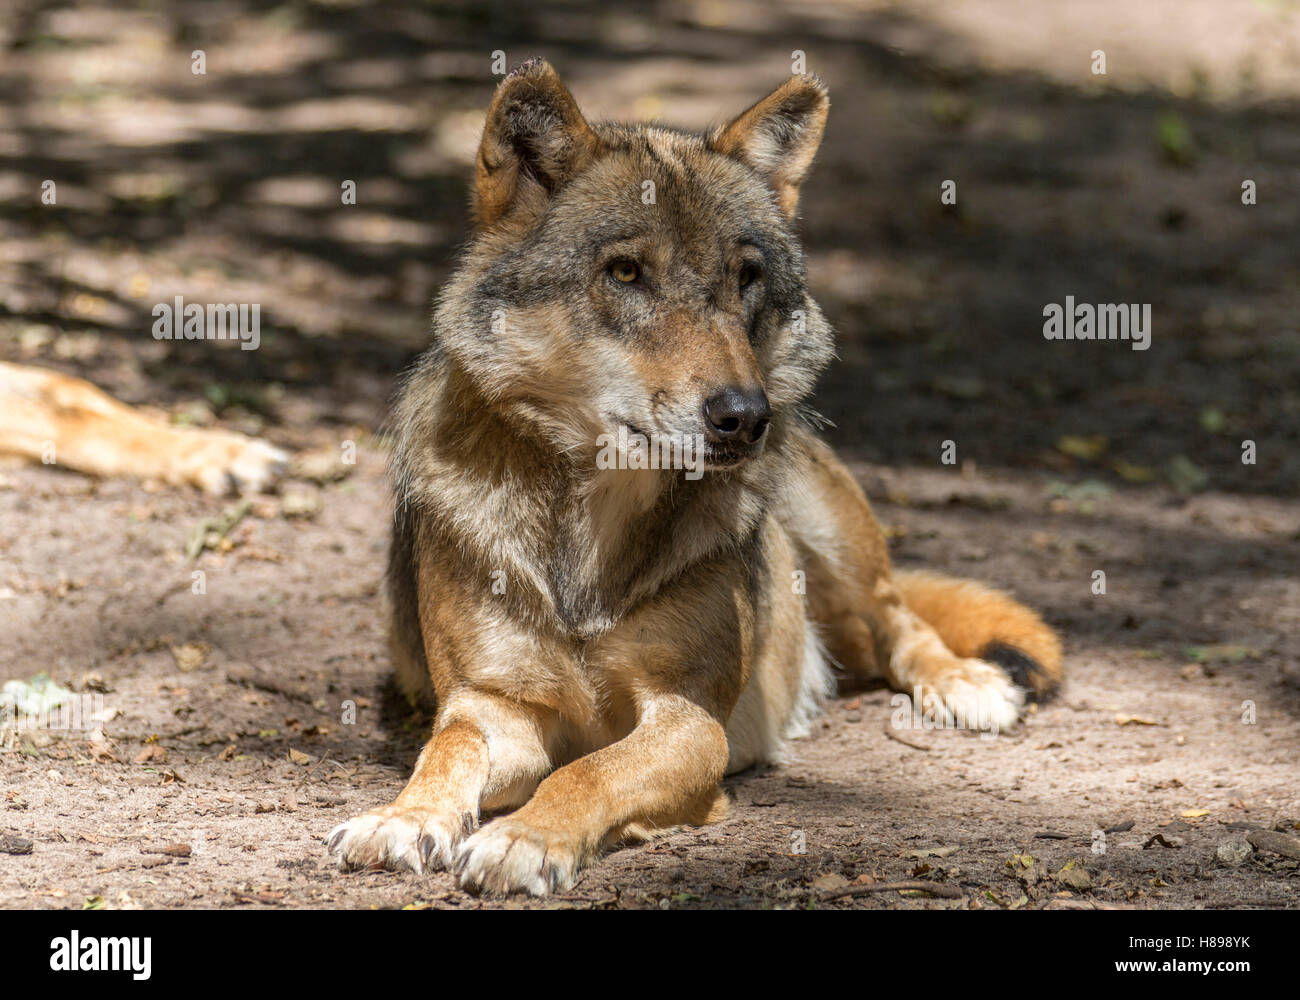 Cute wolf - Stock Image